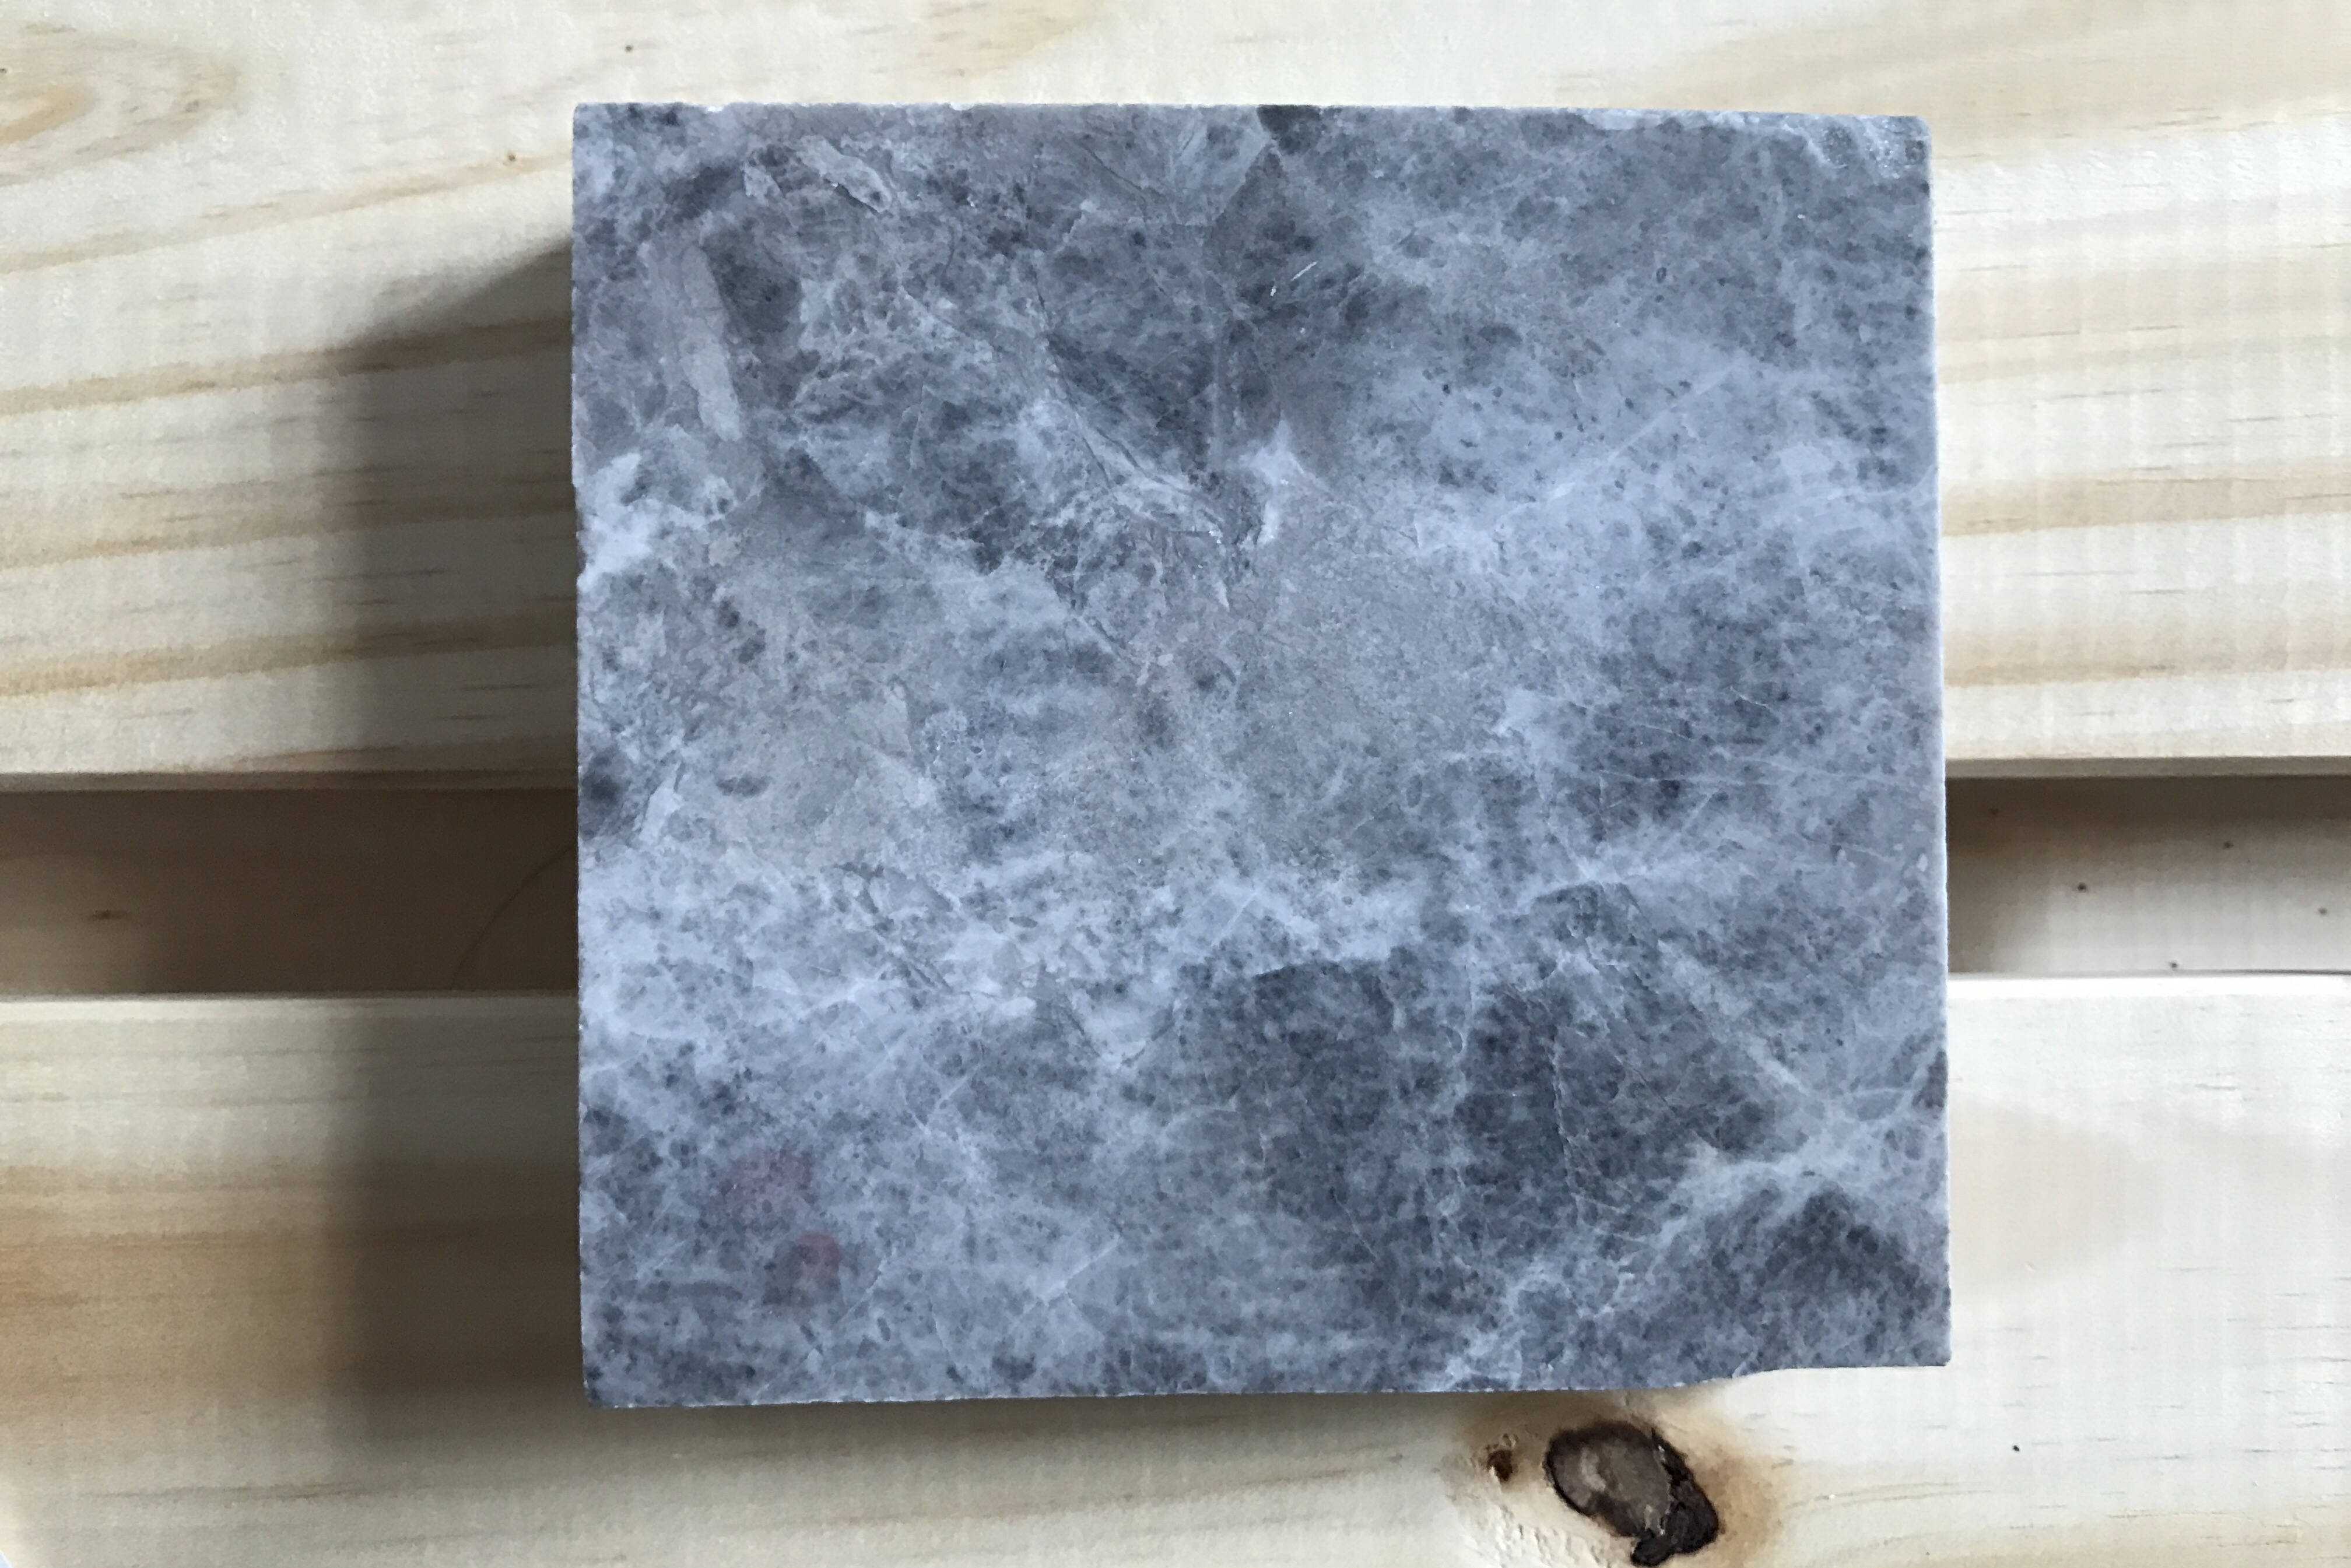 The Silver Marble scratch test